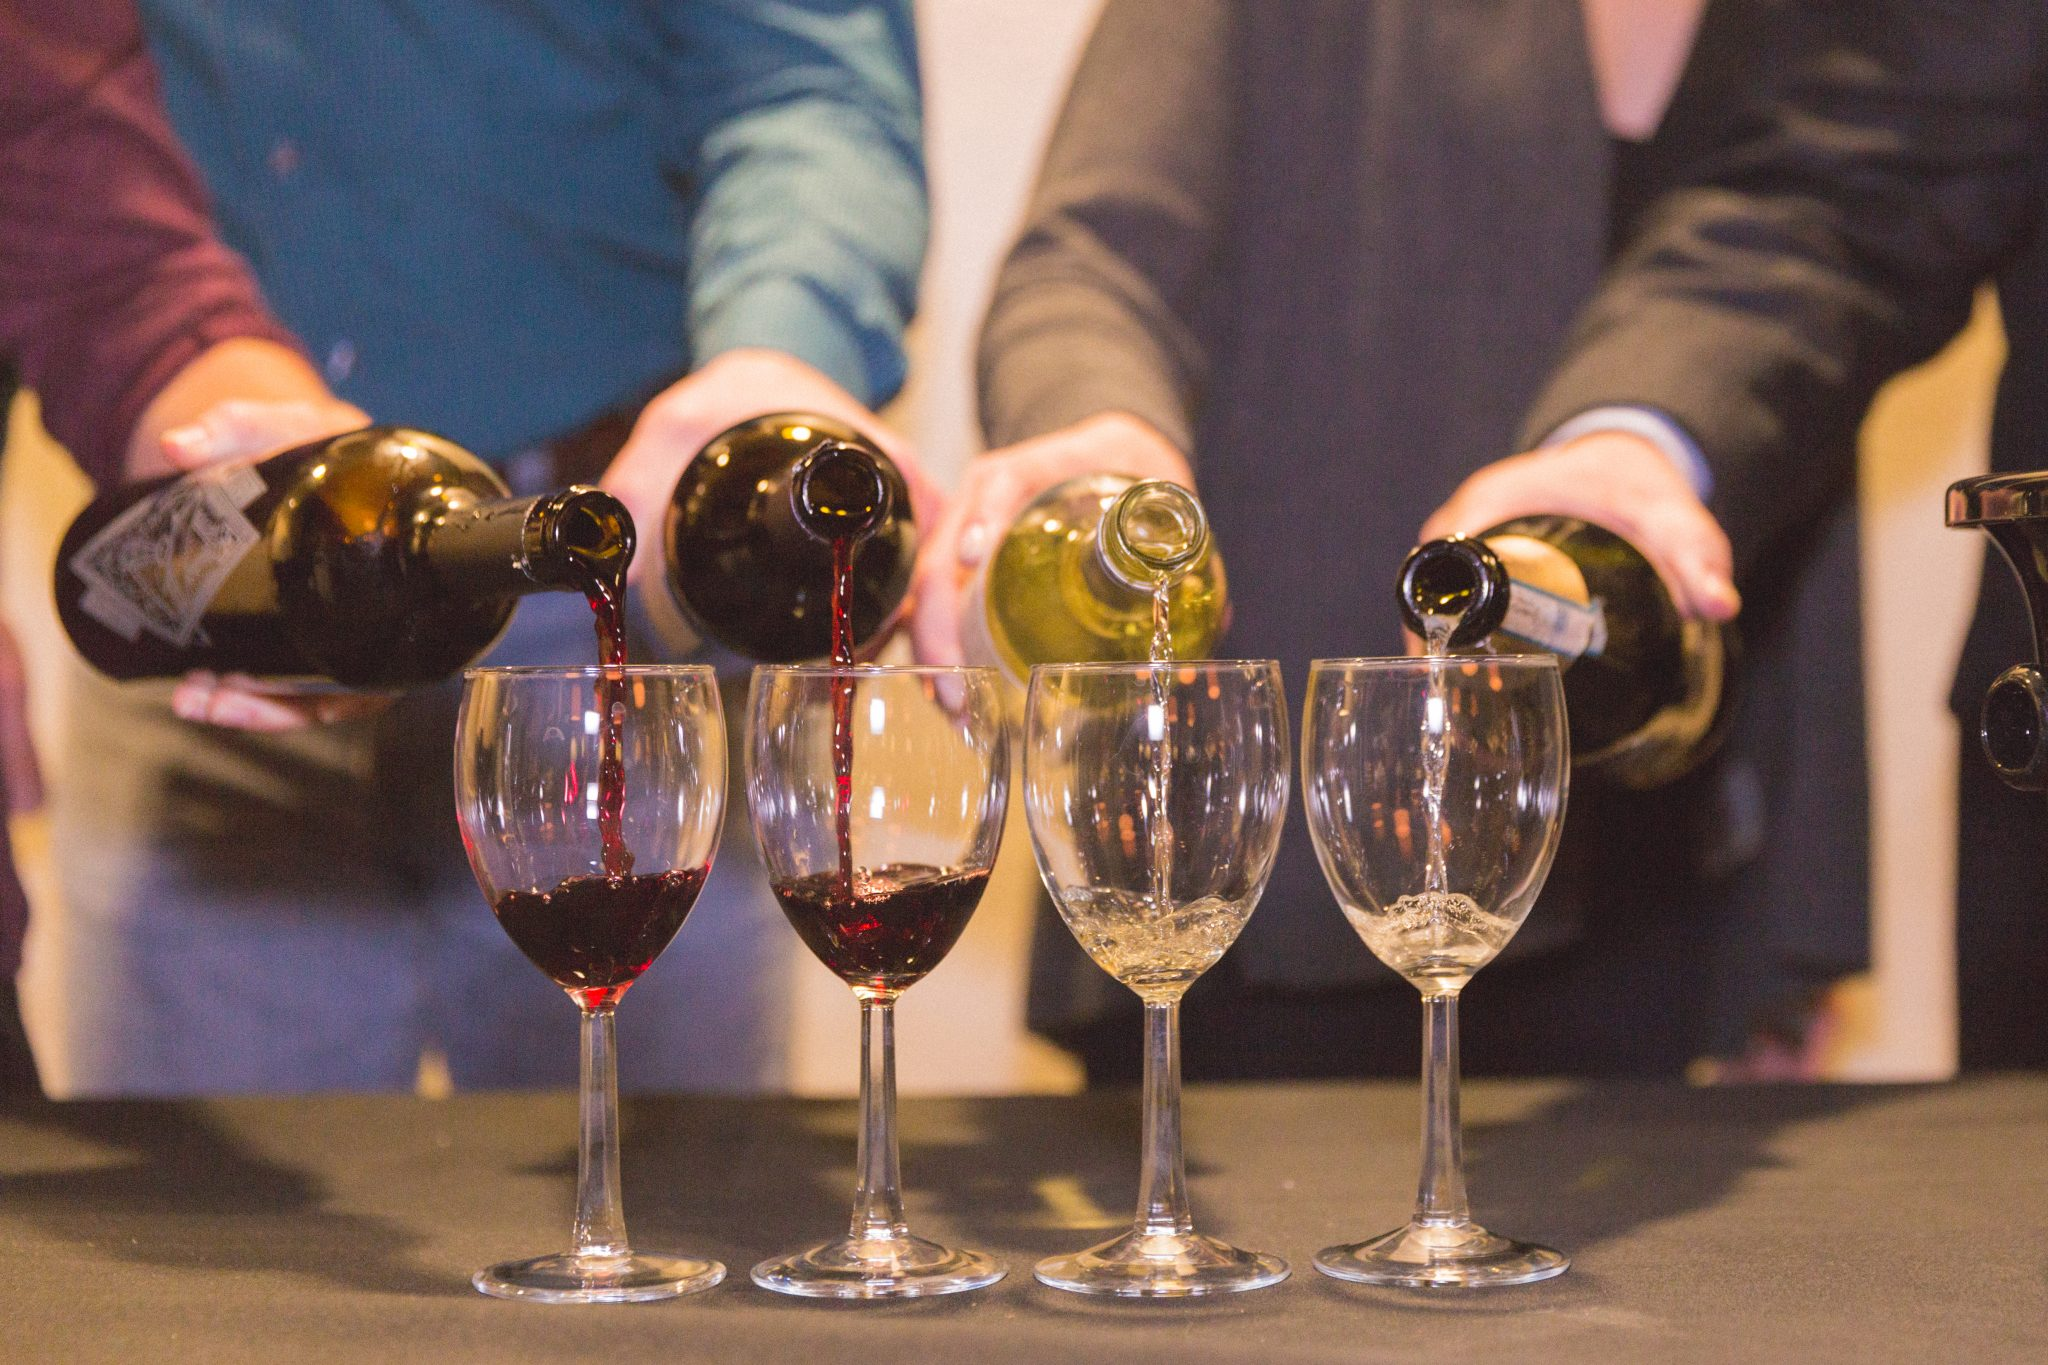 WINTER PROGRAMMING AT WARREN STATION IN KEYSTONE CONTINUES WITH THE WINTER WINE TASTING